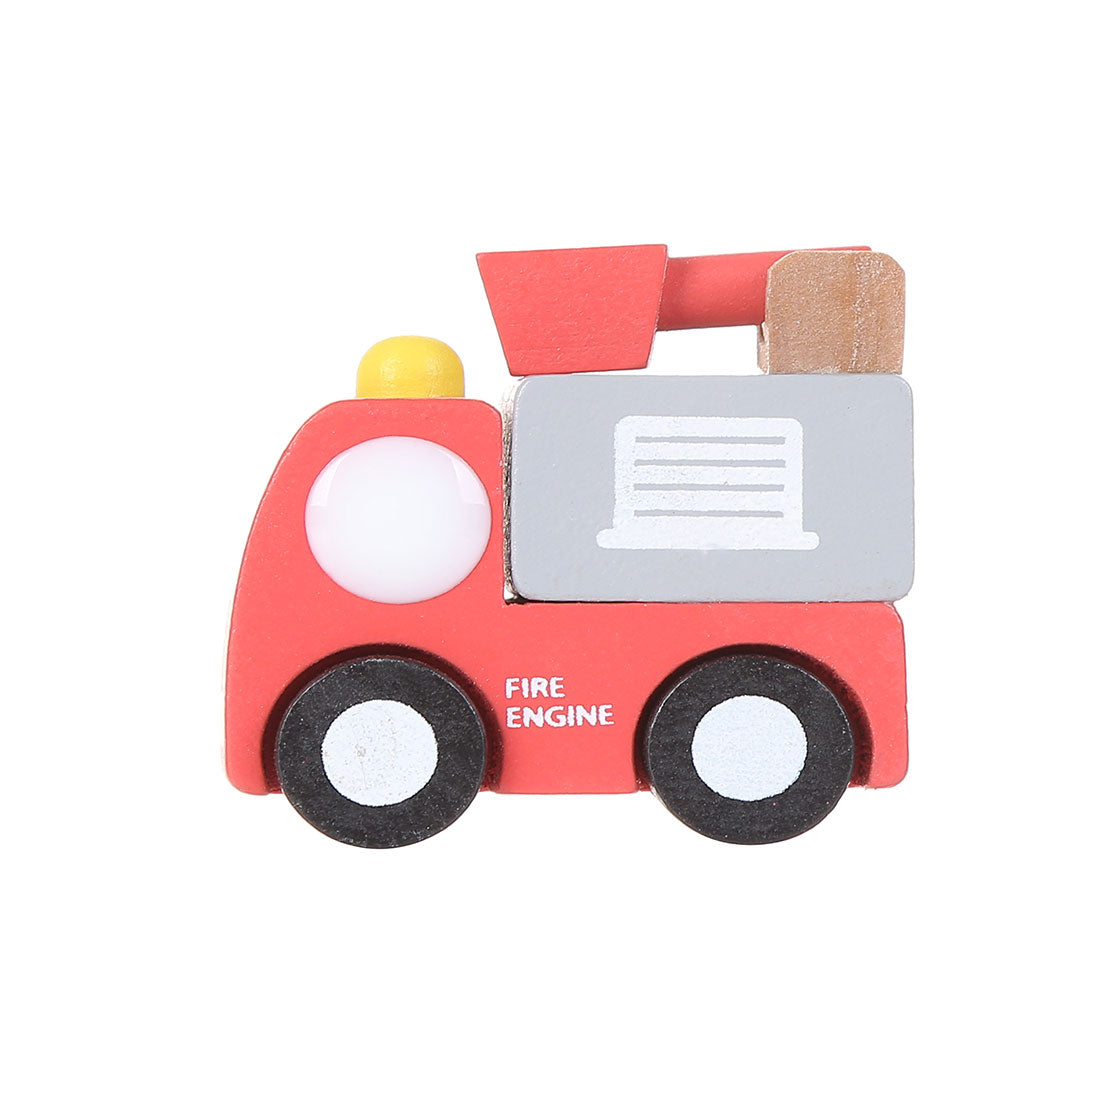 MINISO Wooden Model Vehicle Toy Toddler, Red